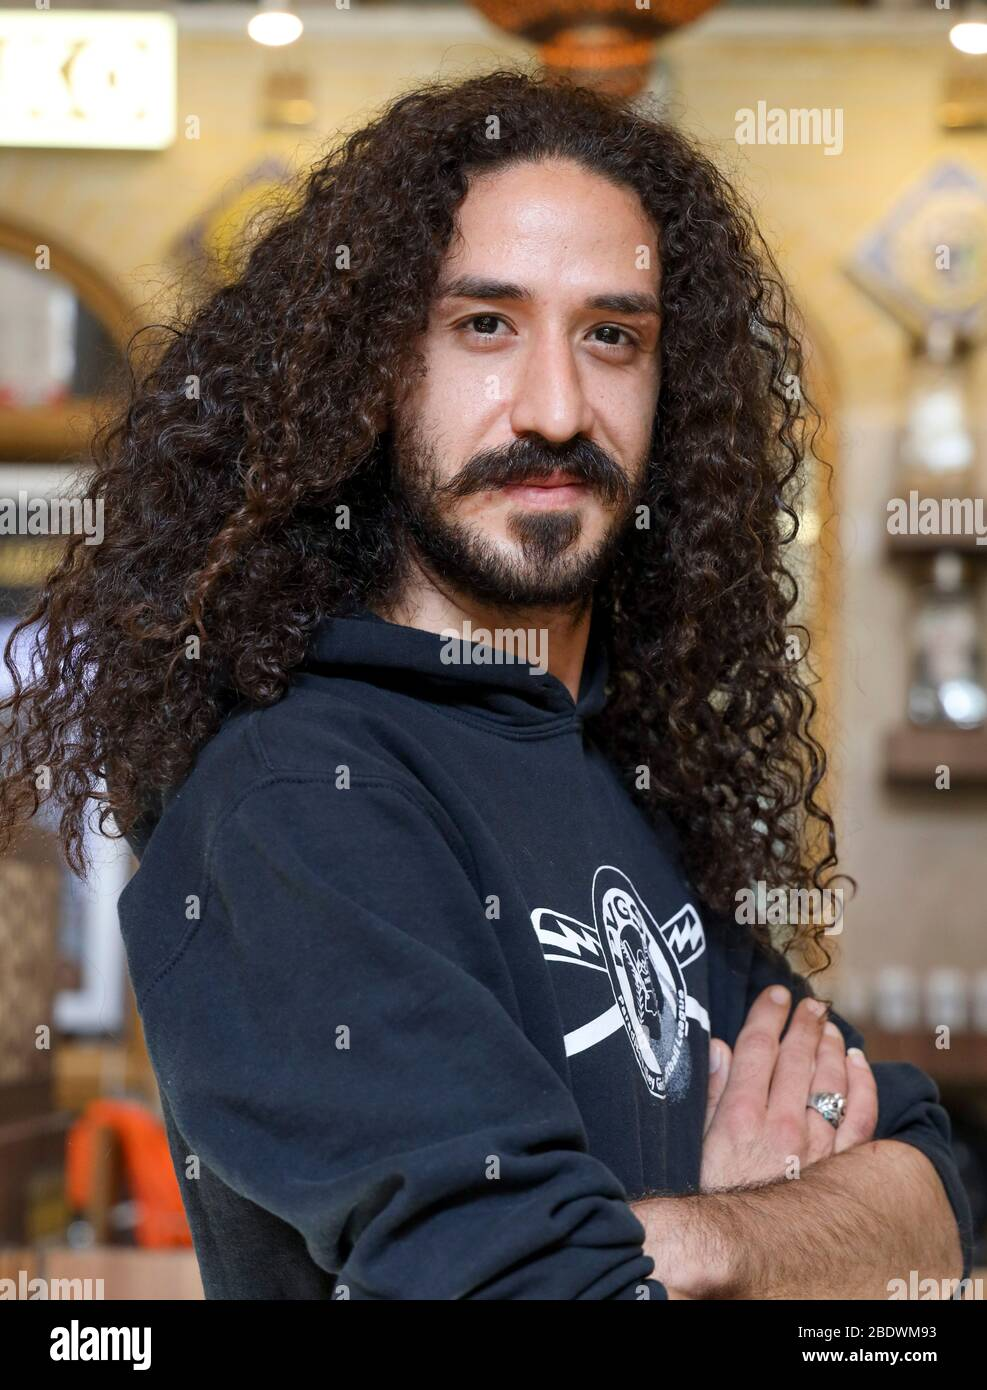 Portrait Of A Young Man With Dark Long Curly Hair In Isfahan Iran Persia Middle East Stock Photo Alamy